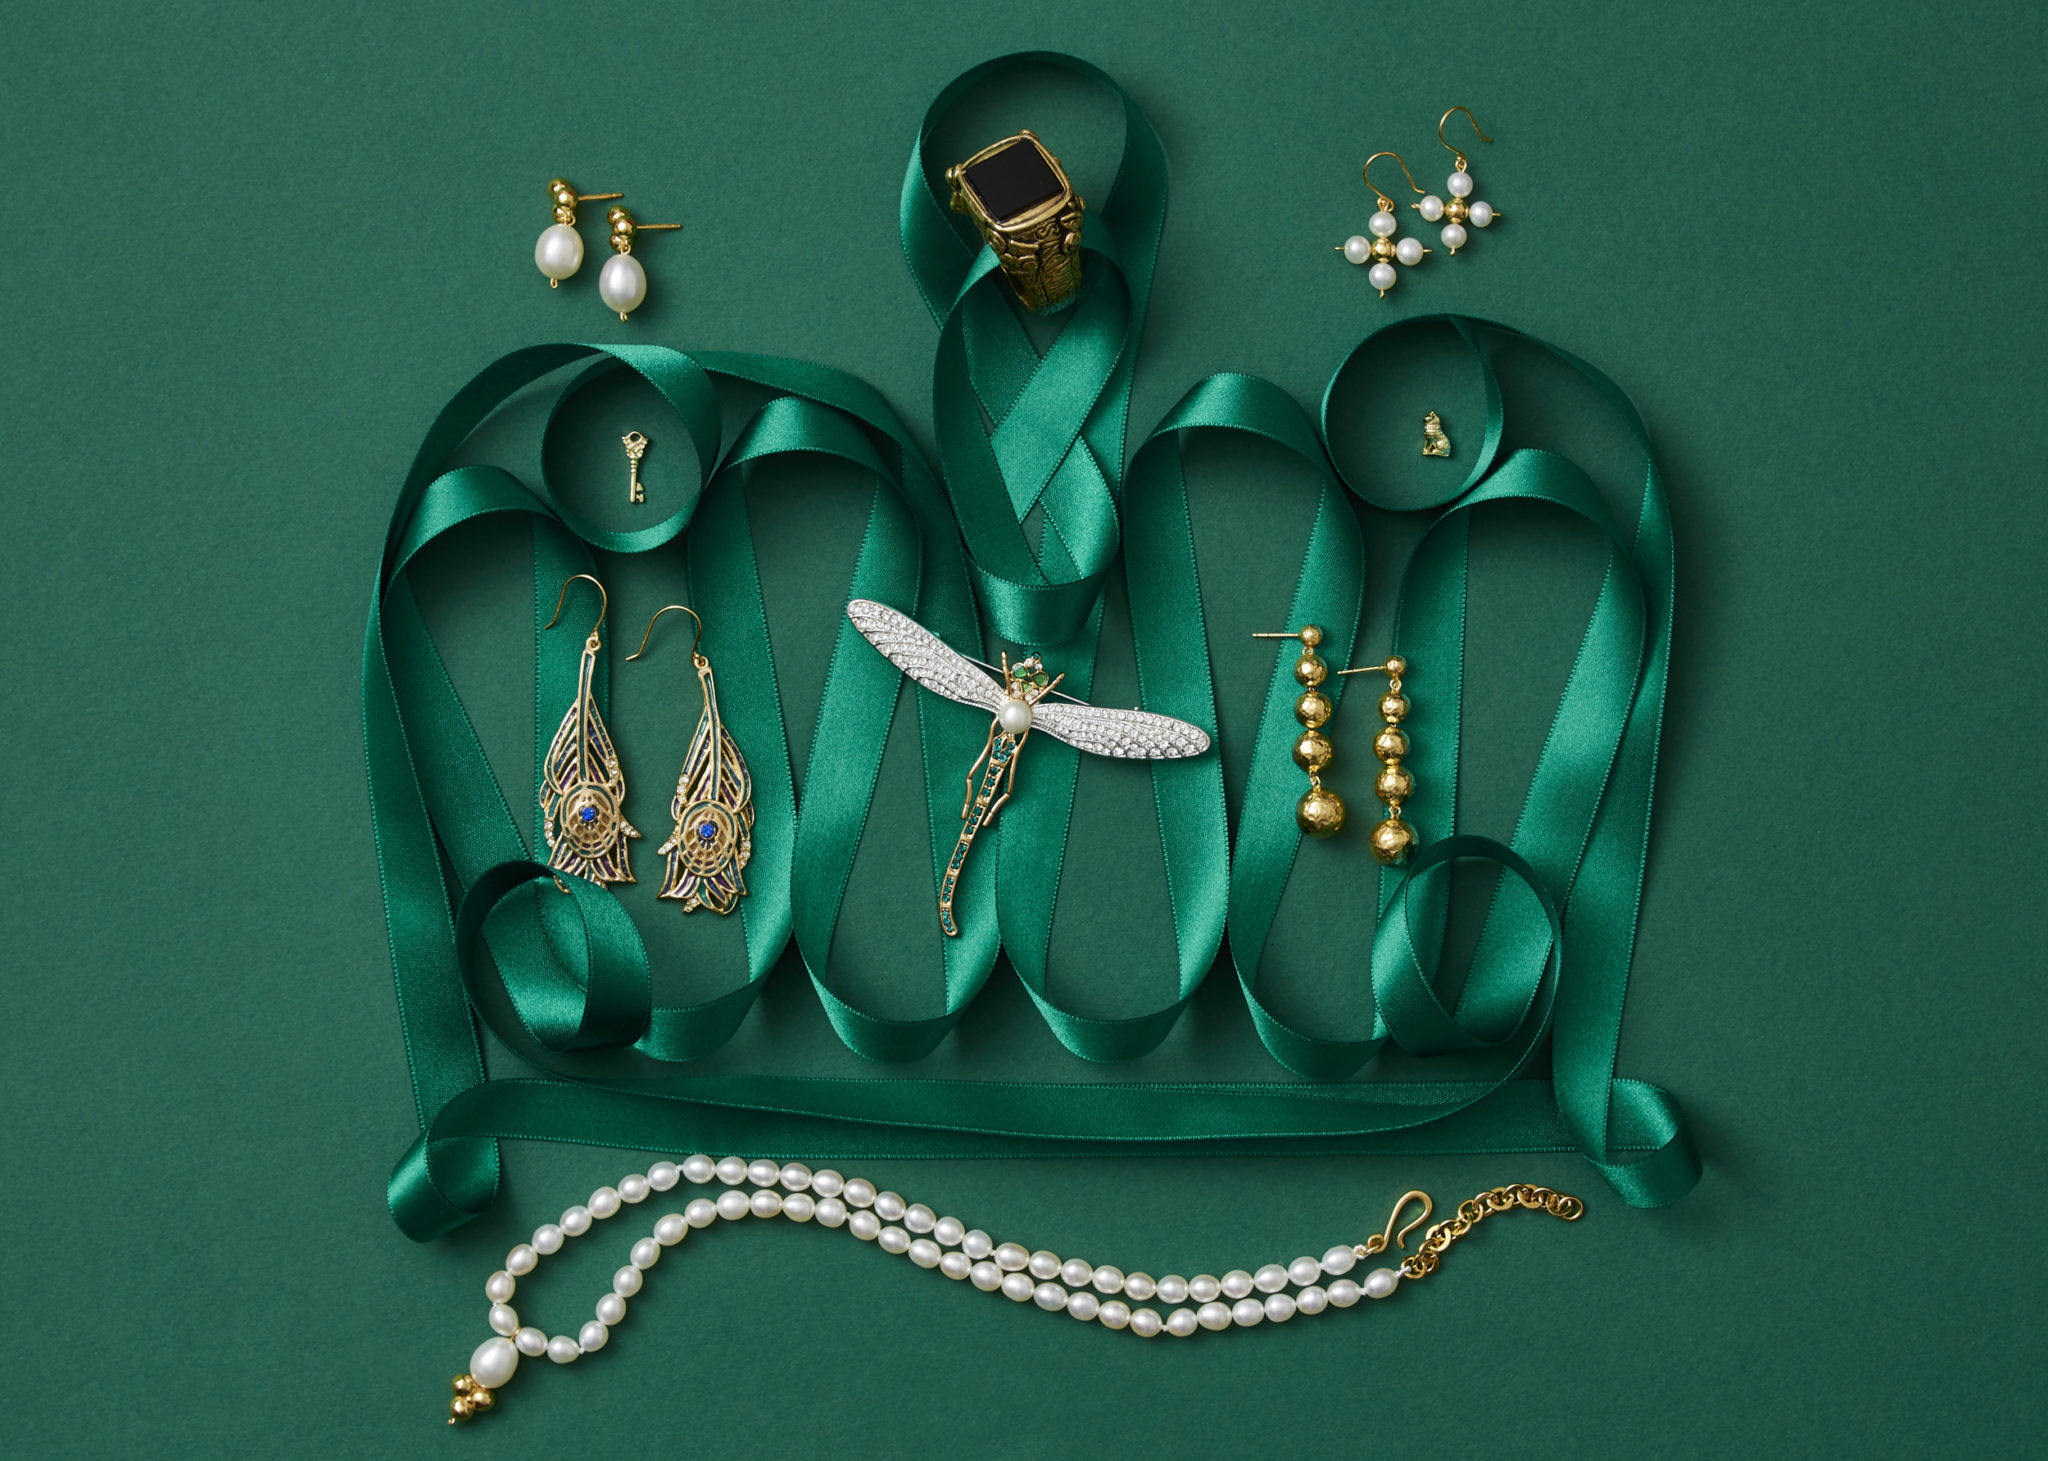 marketing still life photograph of a crown made of green ribbon adorned with gold and pearl jewelry including earrings, a pin, a ring, and a necklace on a green background.